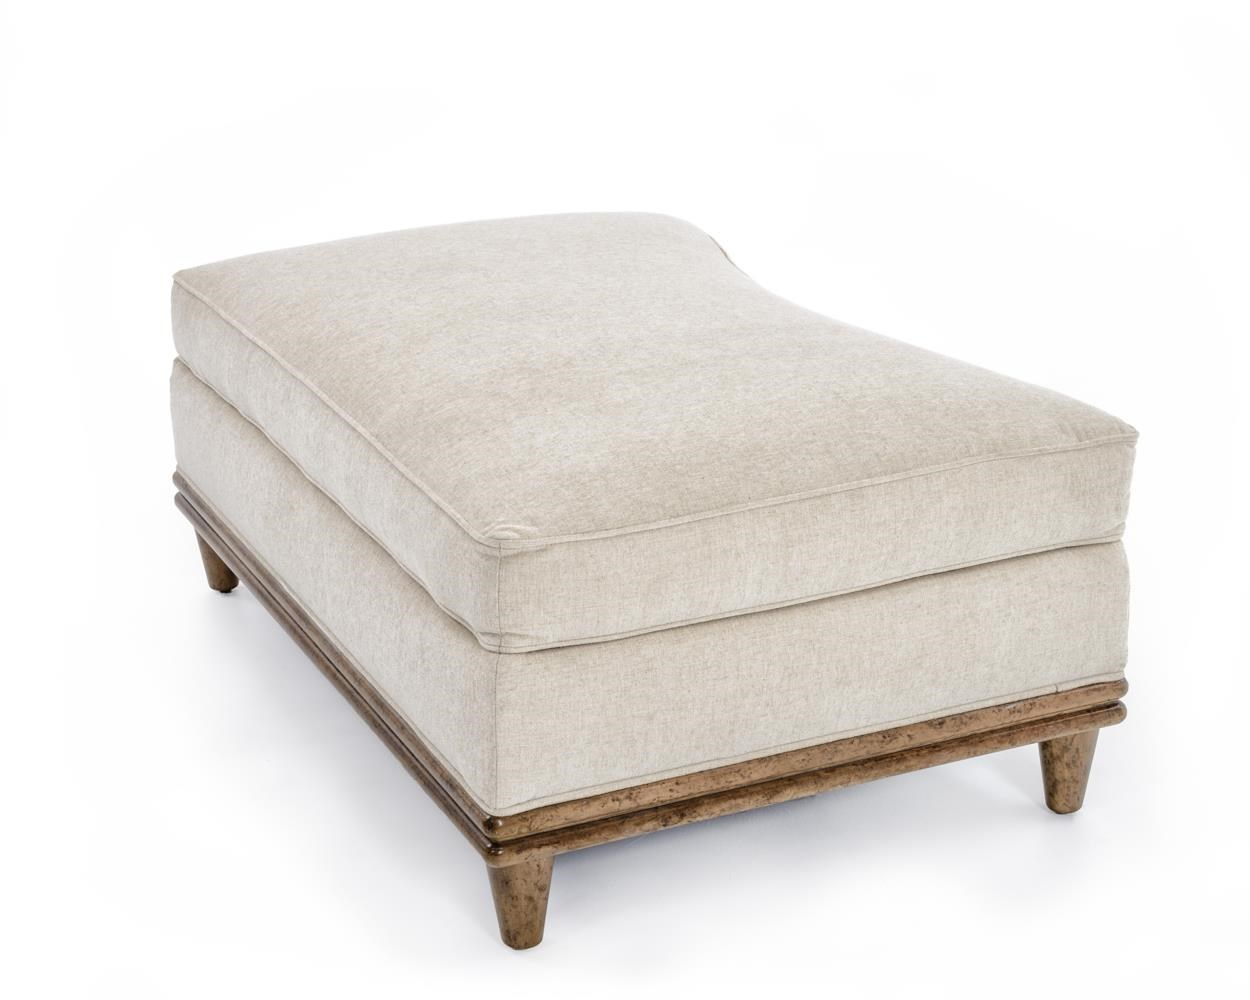 A.R.T. Furniture Inc Monterrey Ottoman - Item Number: 529524-5208AA